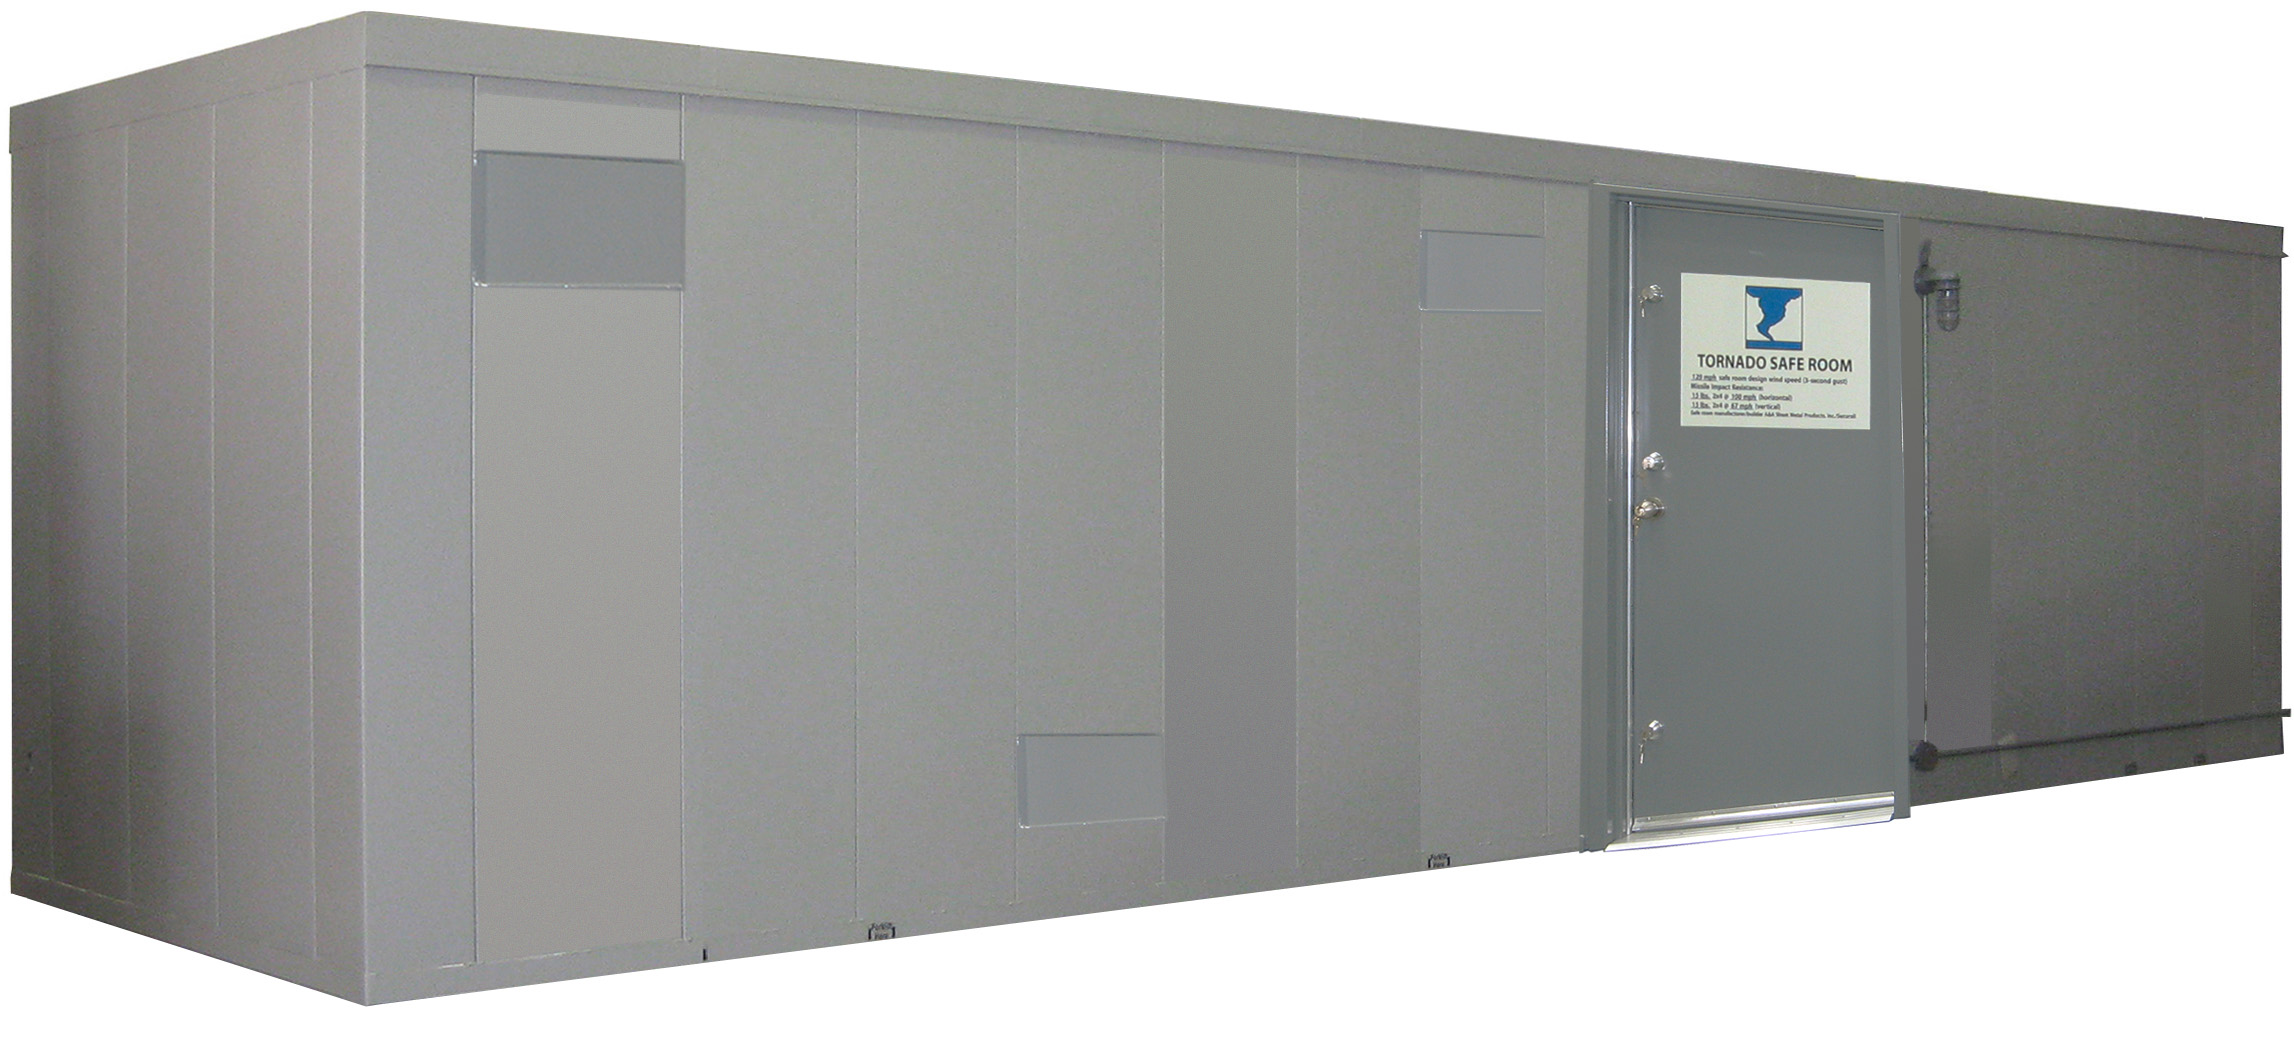 Tornado door storm door or door for safe room construction for Vault room construction